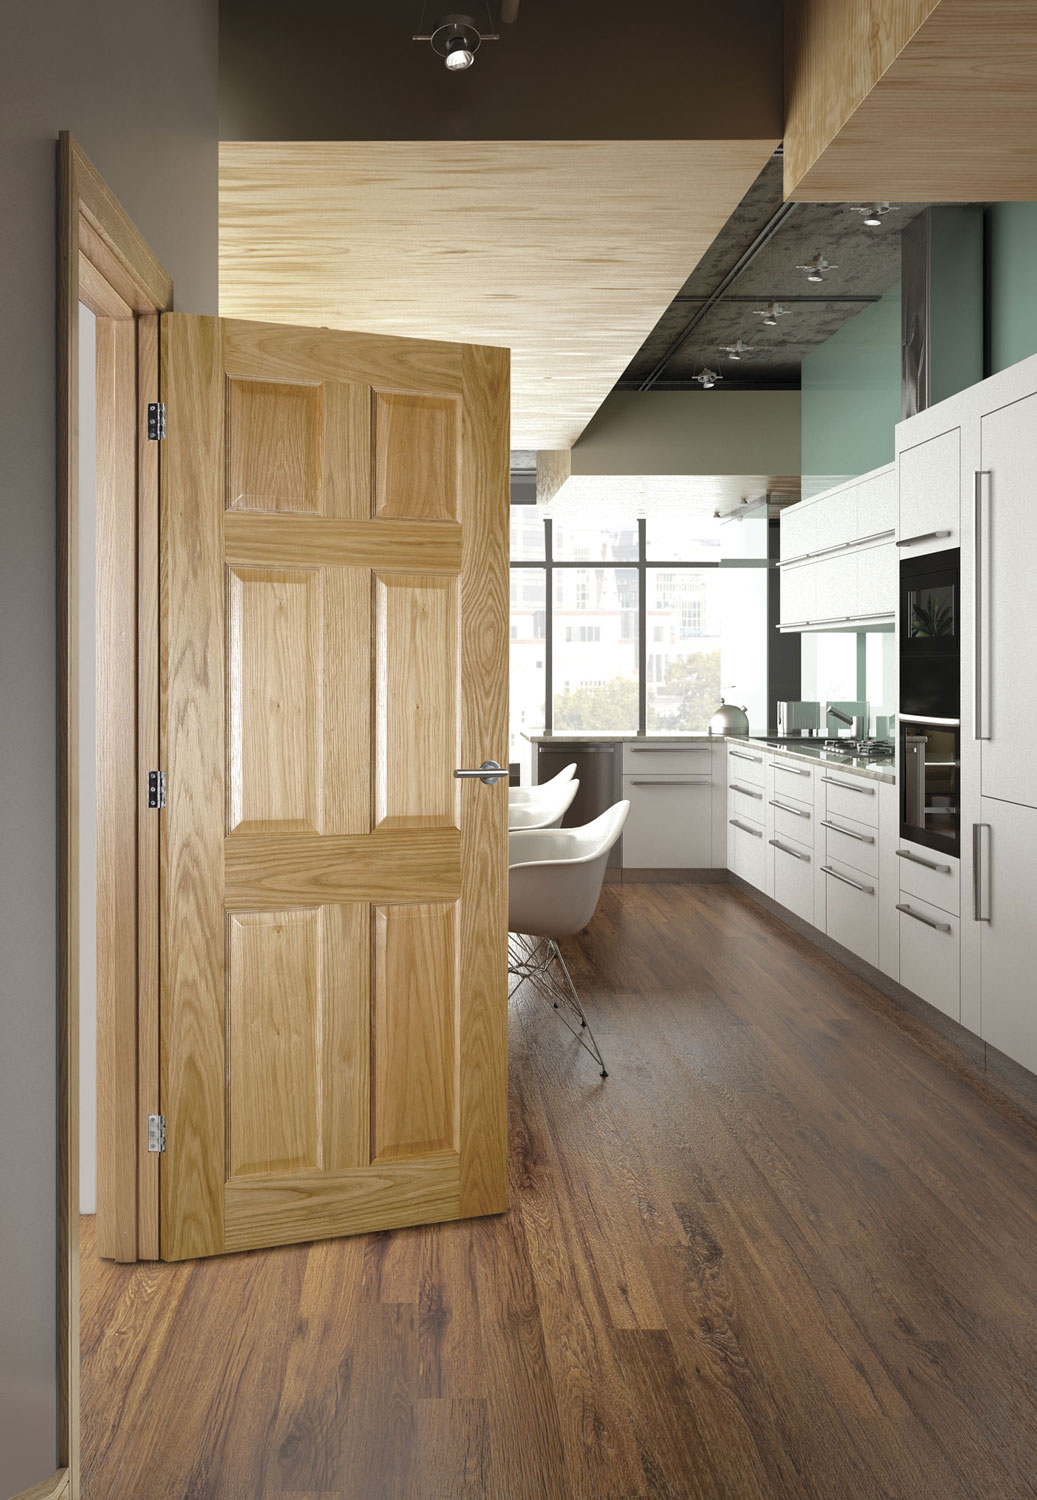 Oxford 6 Panel Internal Prefinished Oak Doors